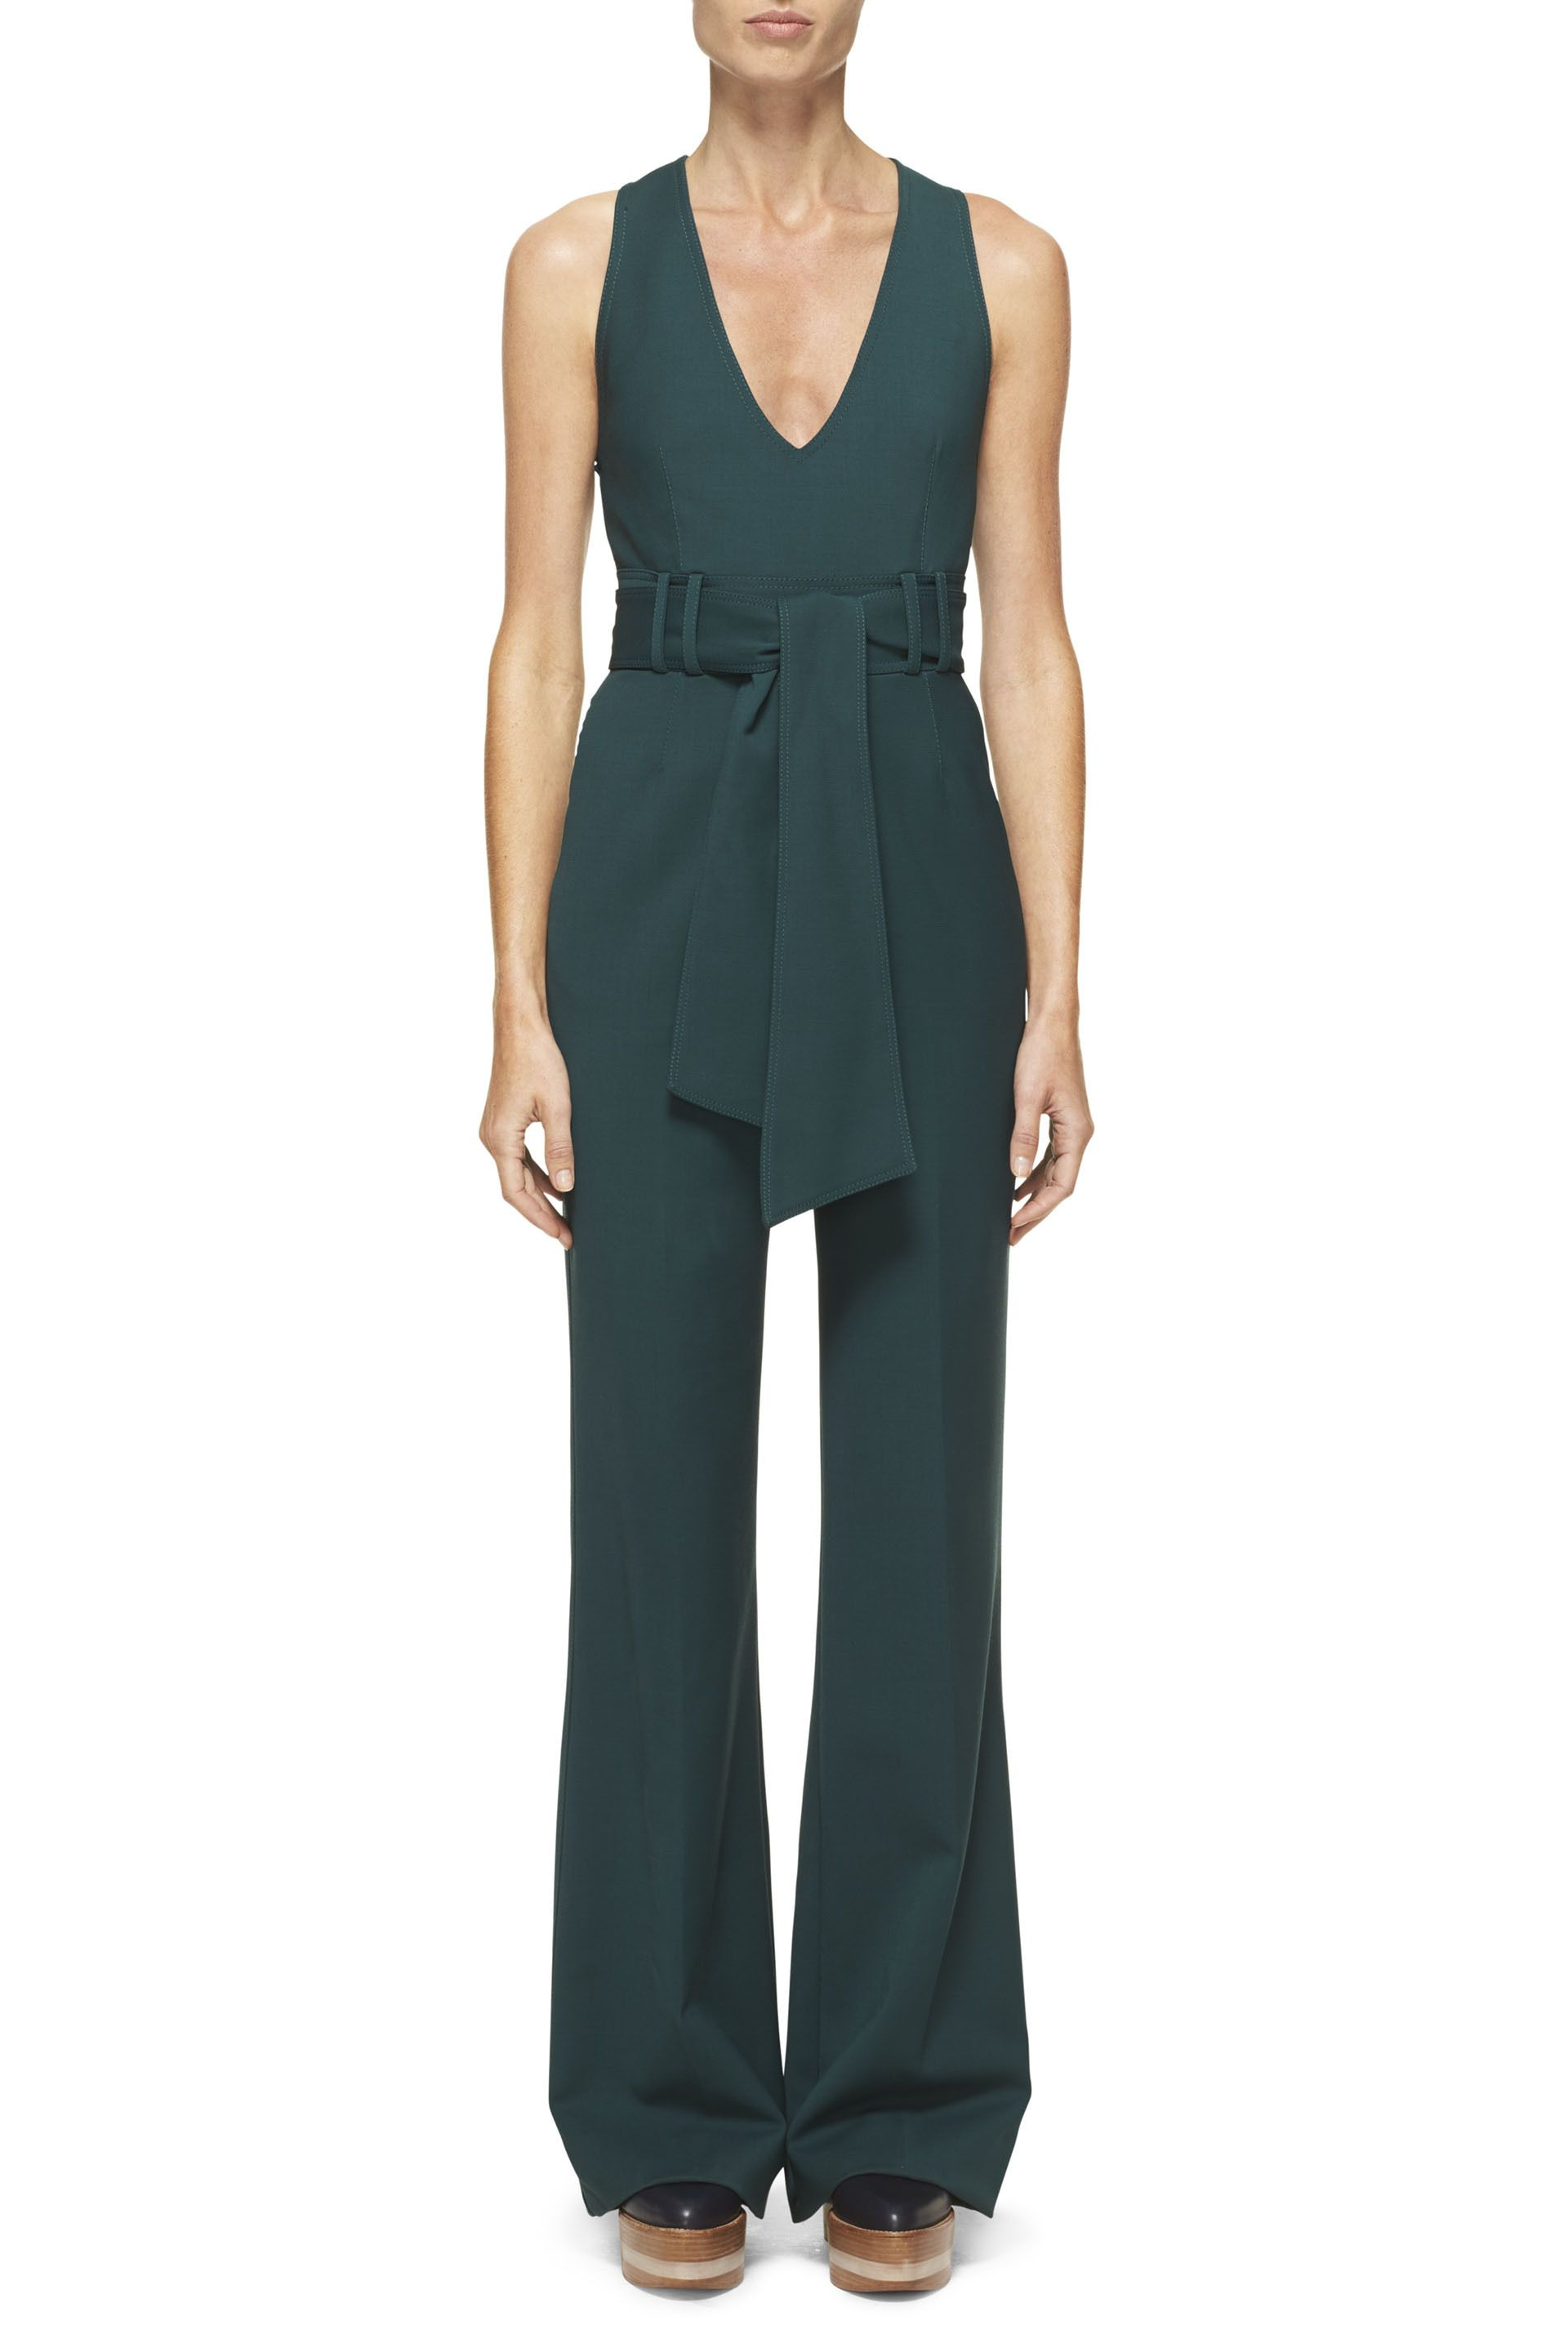 DUNGAREES - Jumpsuits Gabriela Hearst For Nice For Sale Discount Sneakernews Many Colors Cheap Online Store 67dbrI